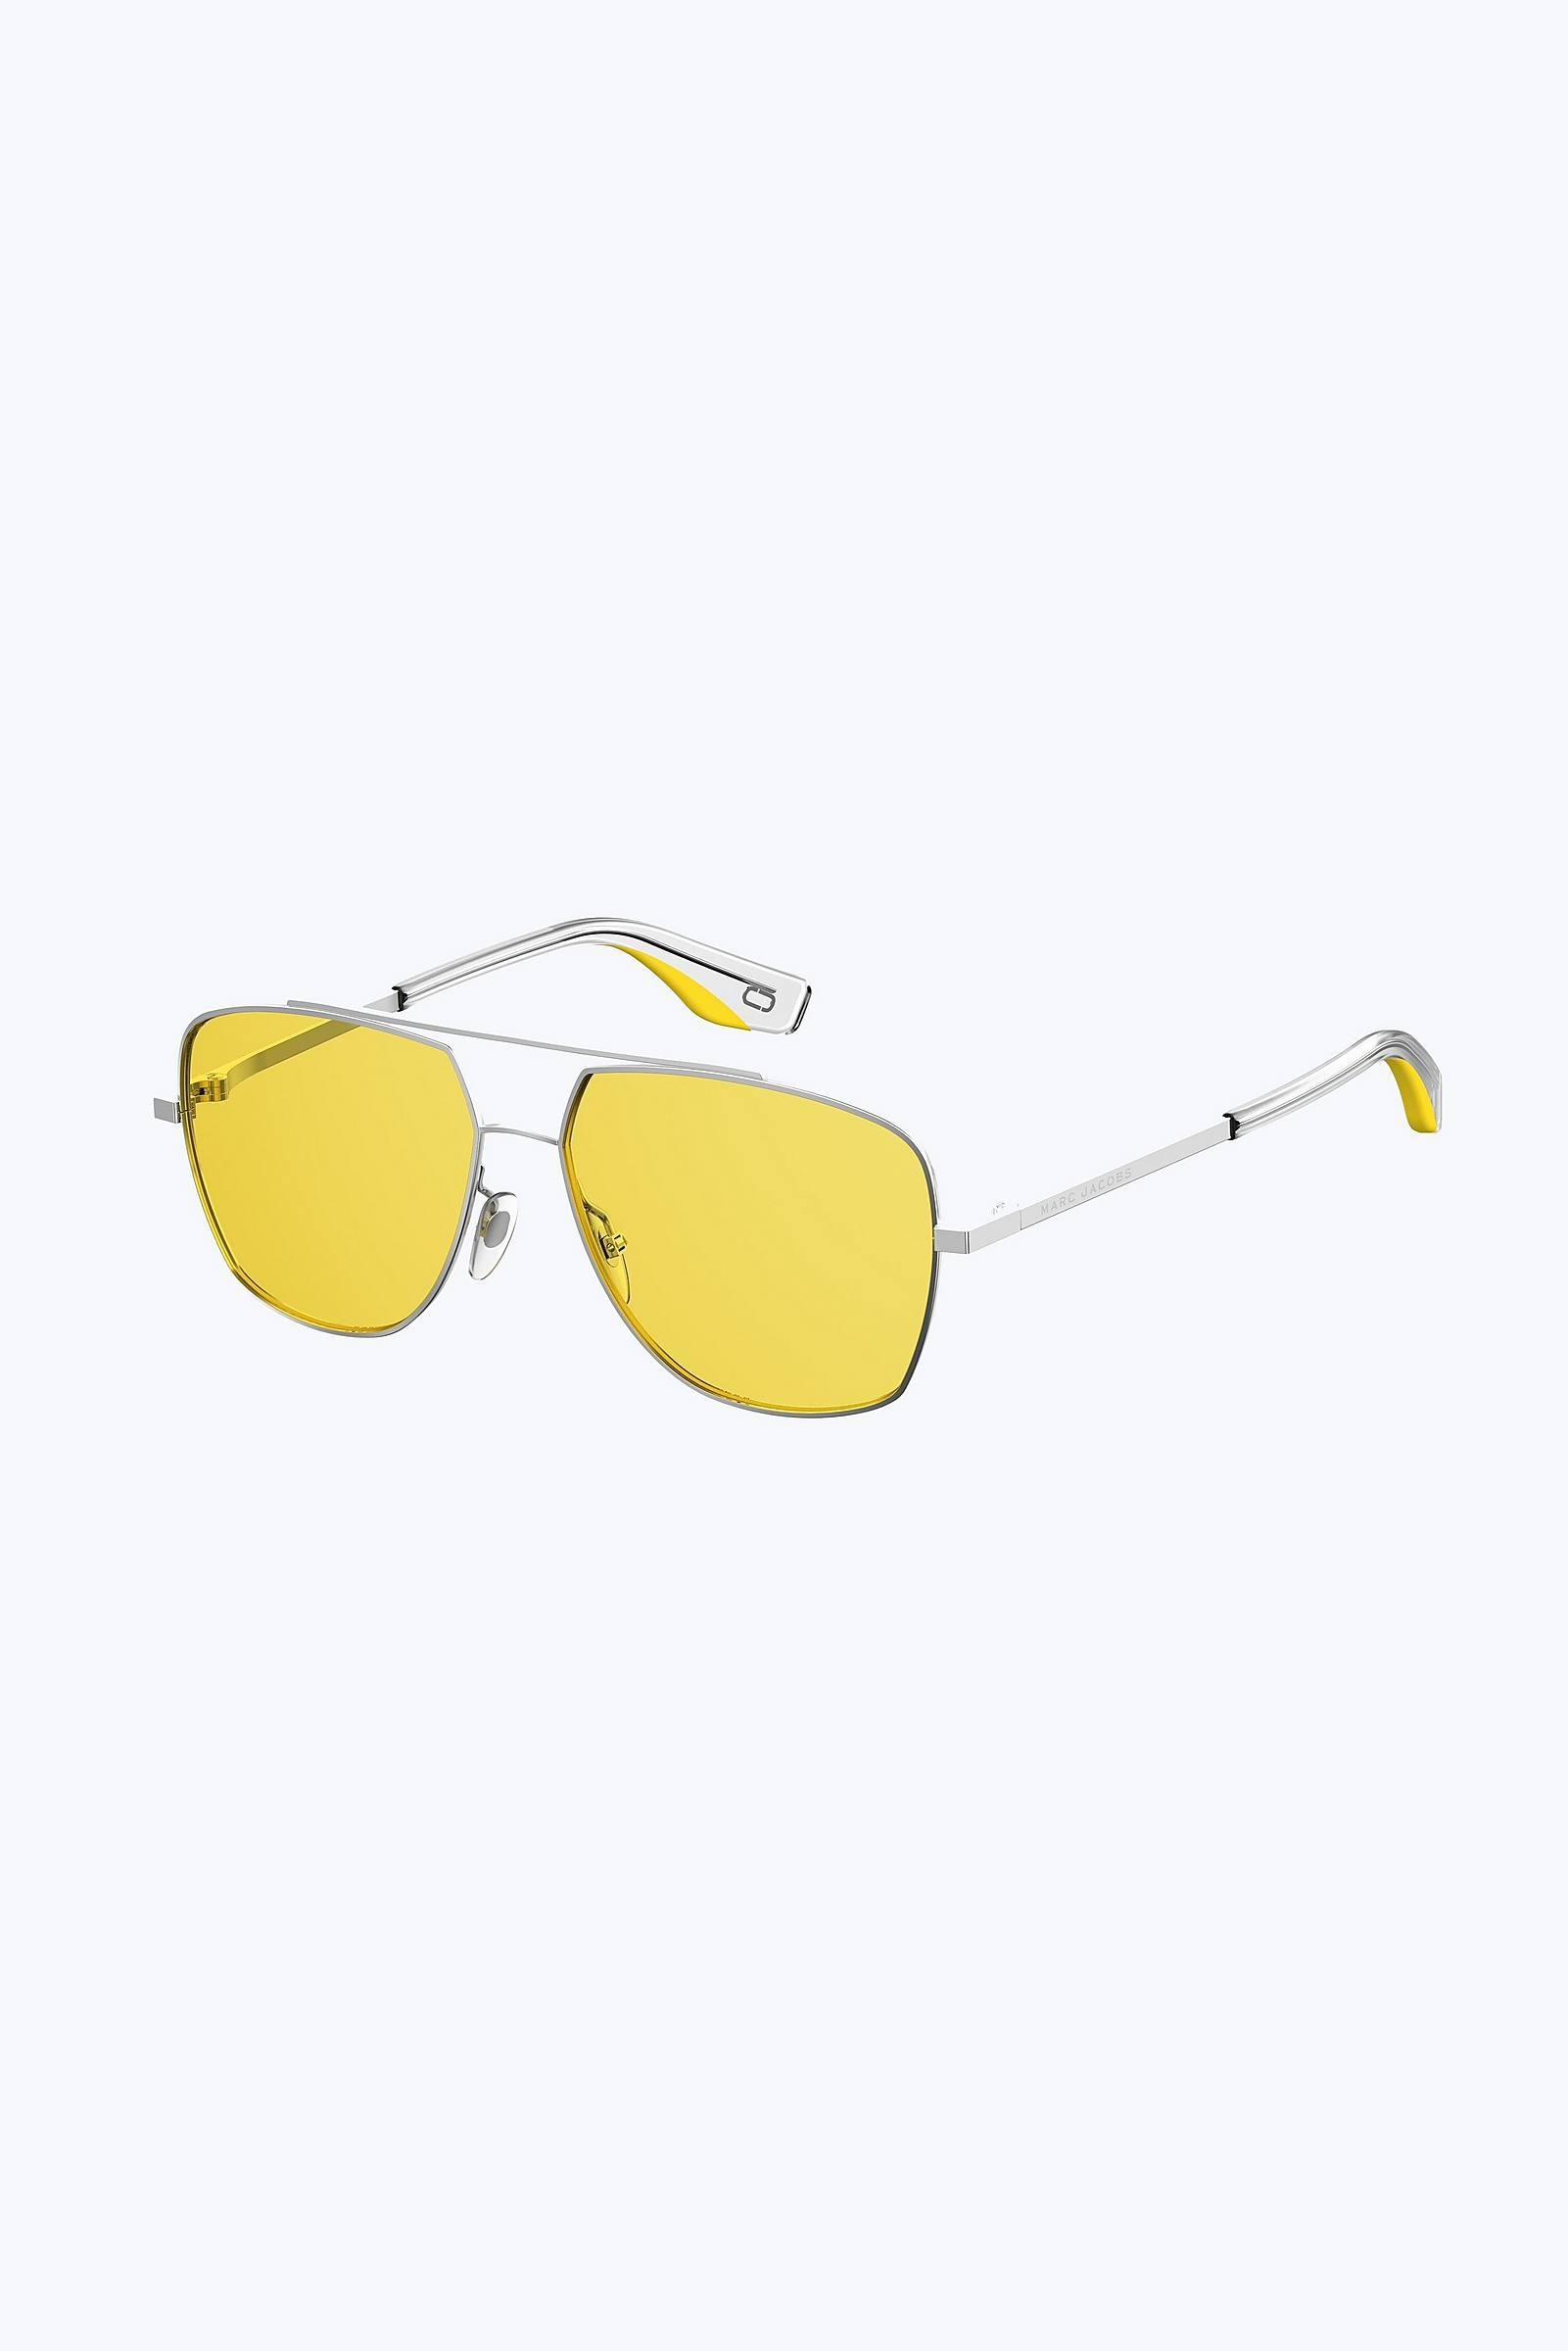 fa4c942736a Marc Jacobs - Yellow Retro Vintage Navigator Sunglasses - Lyst. View  fullscreen